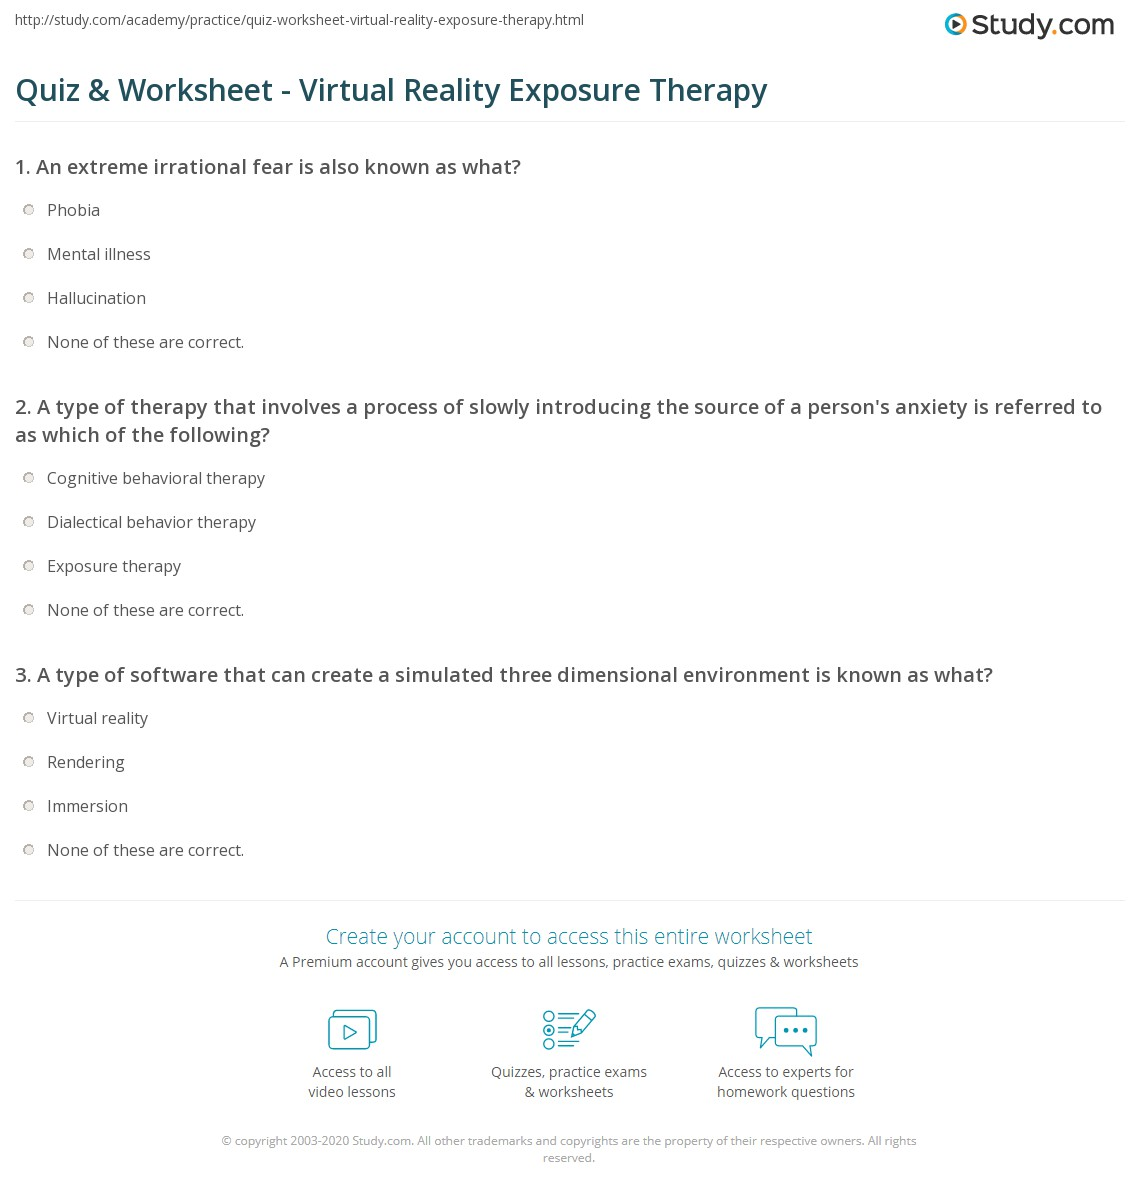 Quiz & Worksheet - Virtual Reality Exposure Therapy | Study.com